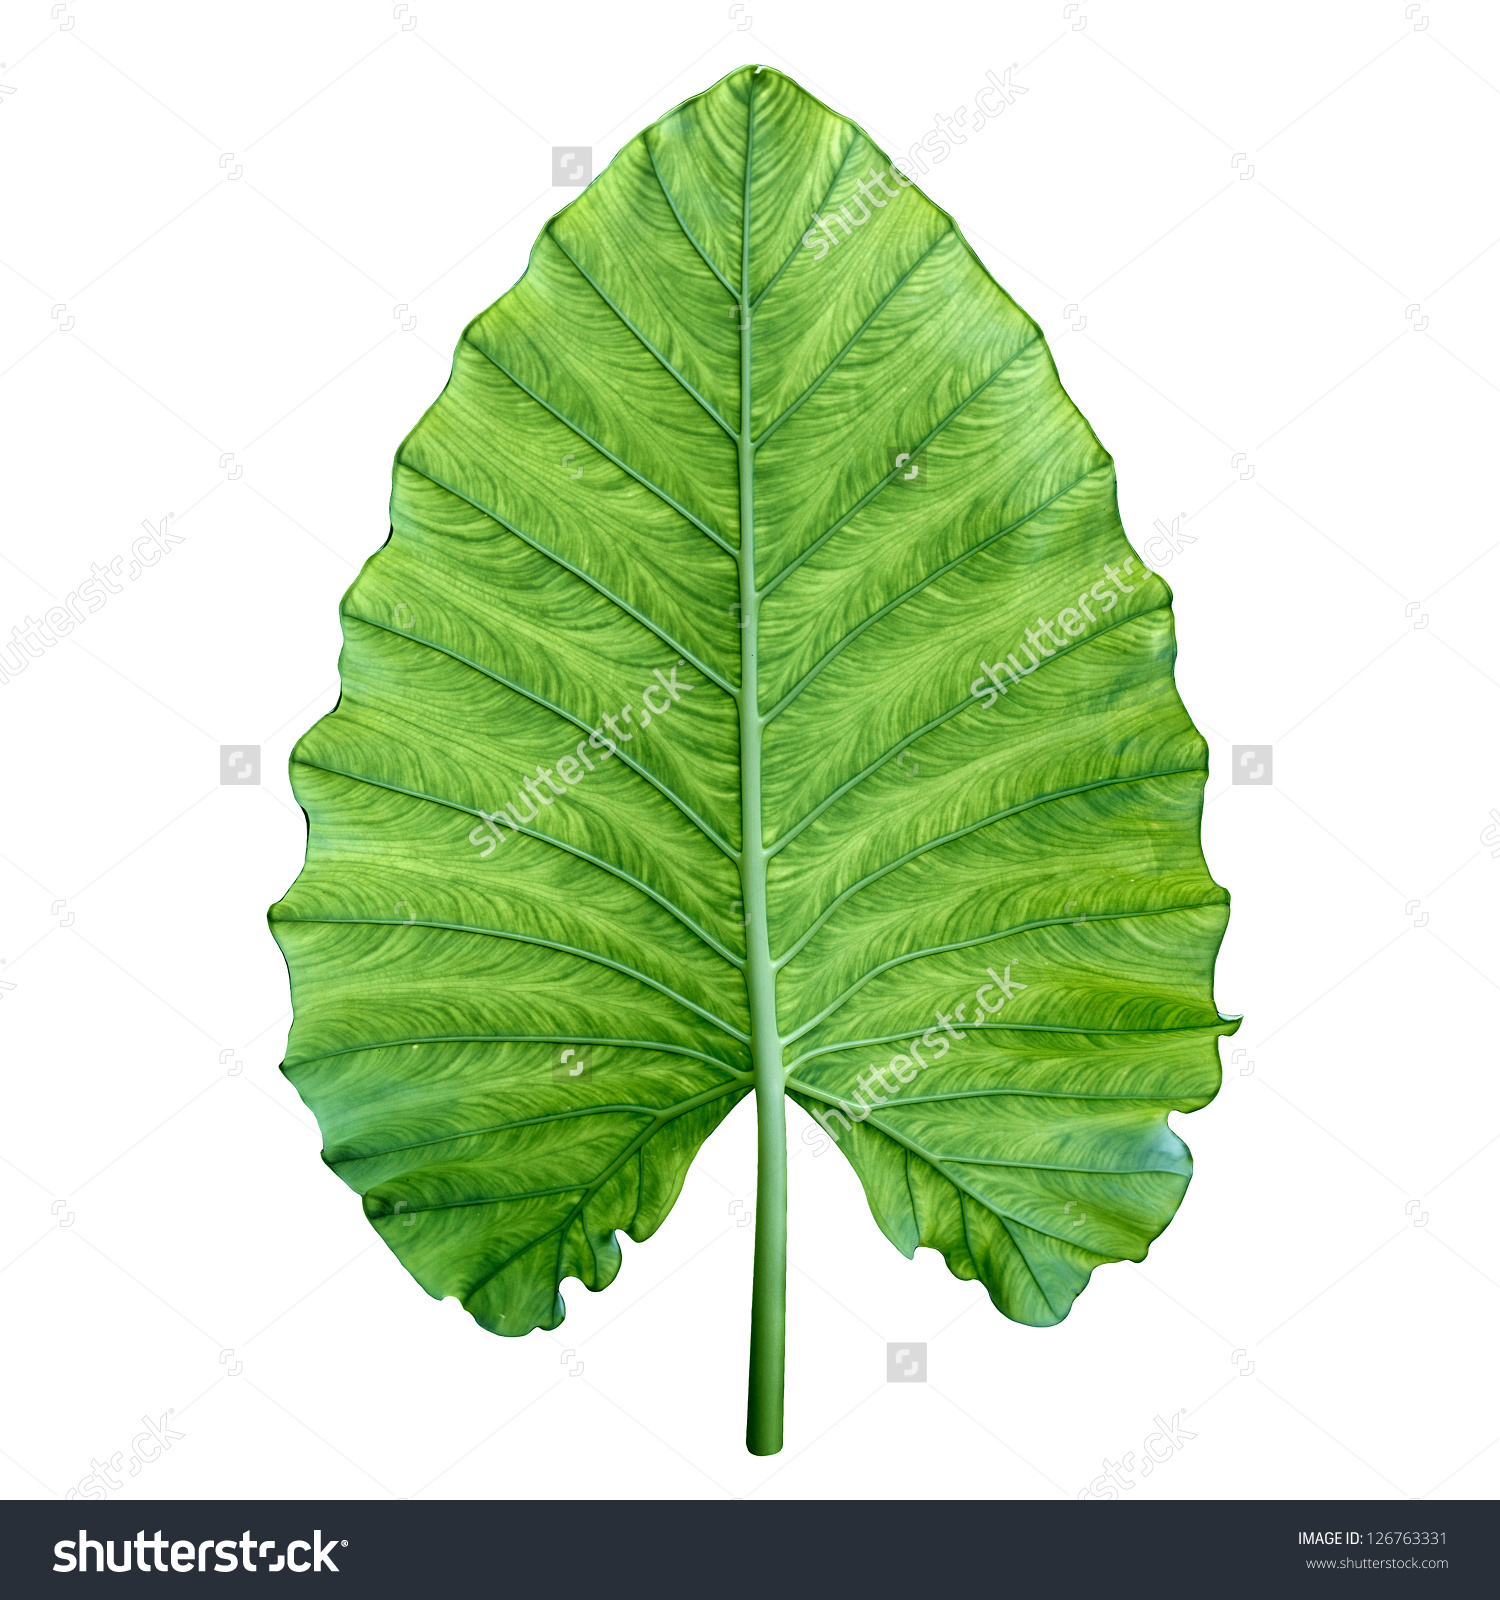 One Big Green Tropical Leaf Giant Stock Photo 126763331.